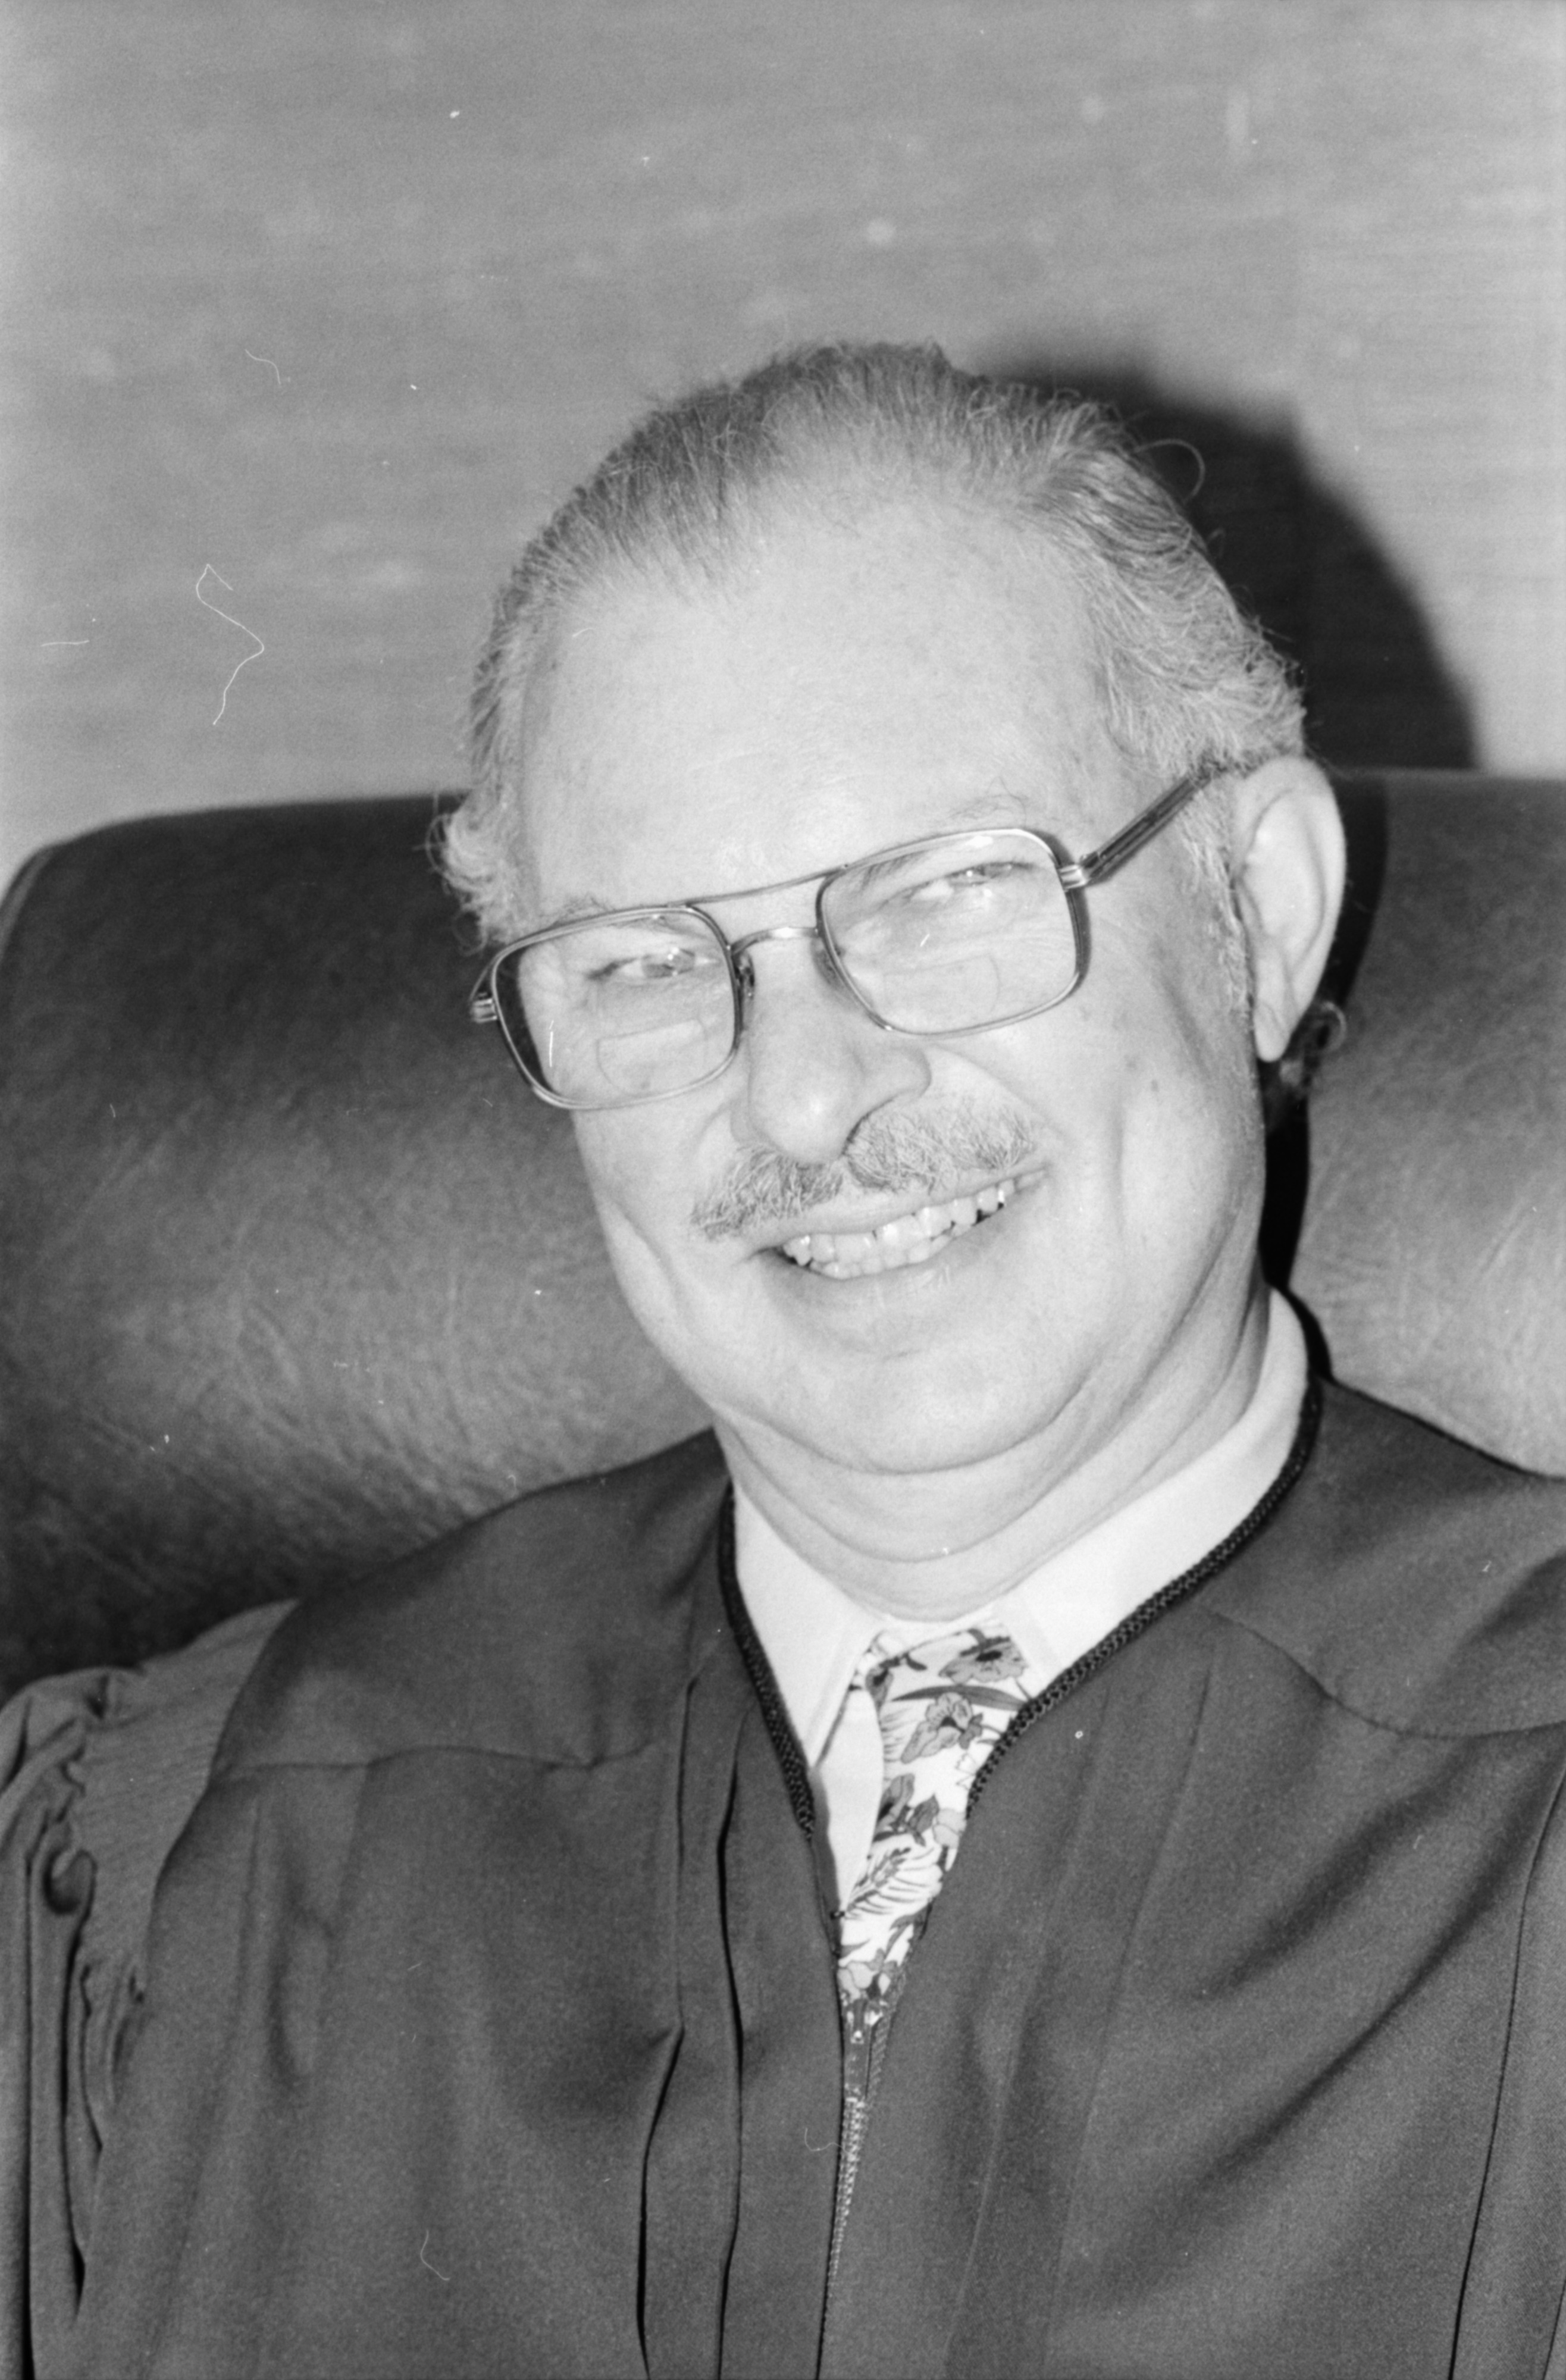 Head Shot of Judge Elden, June 1979 image